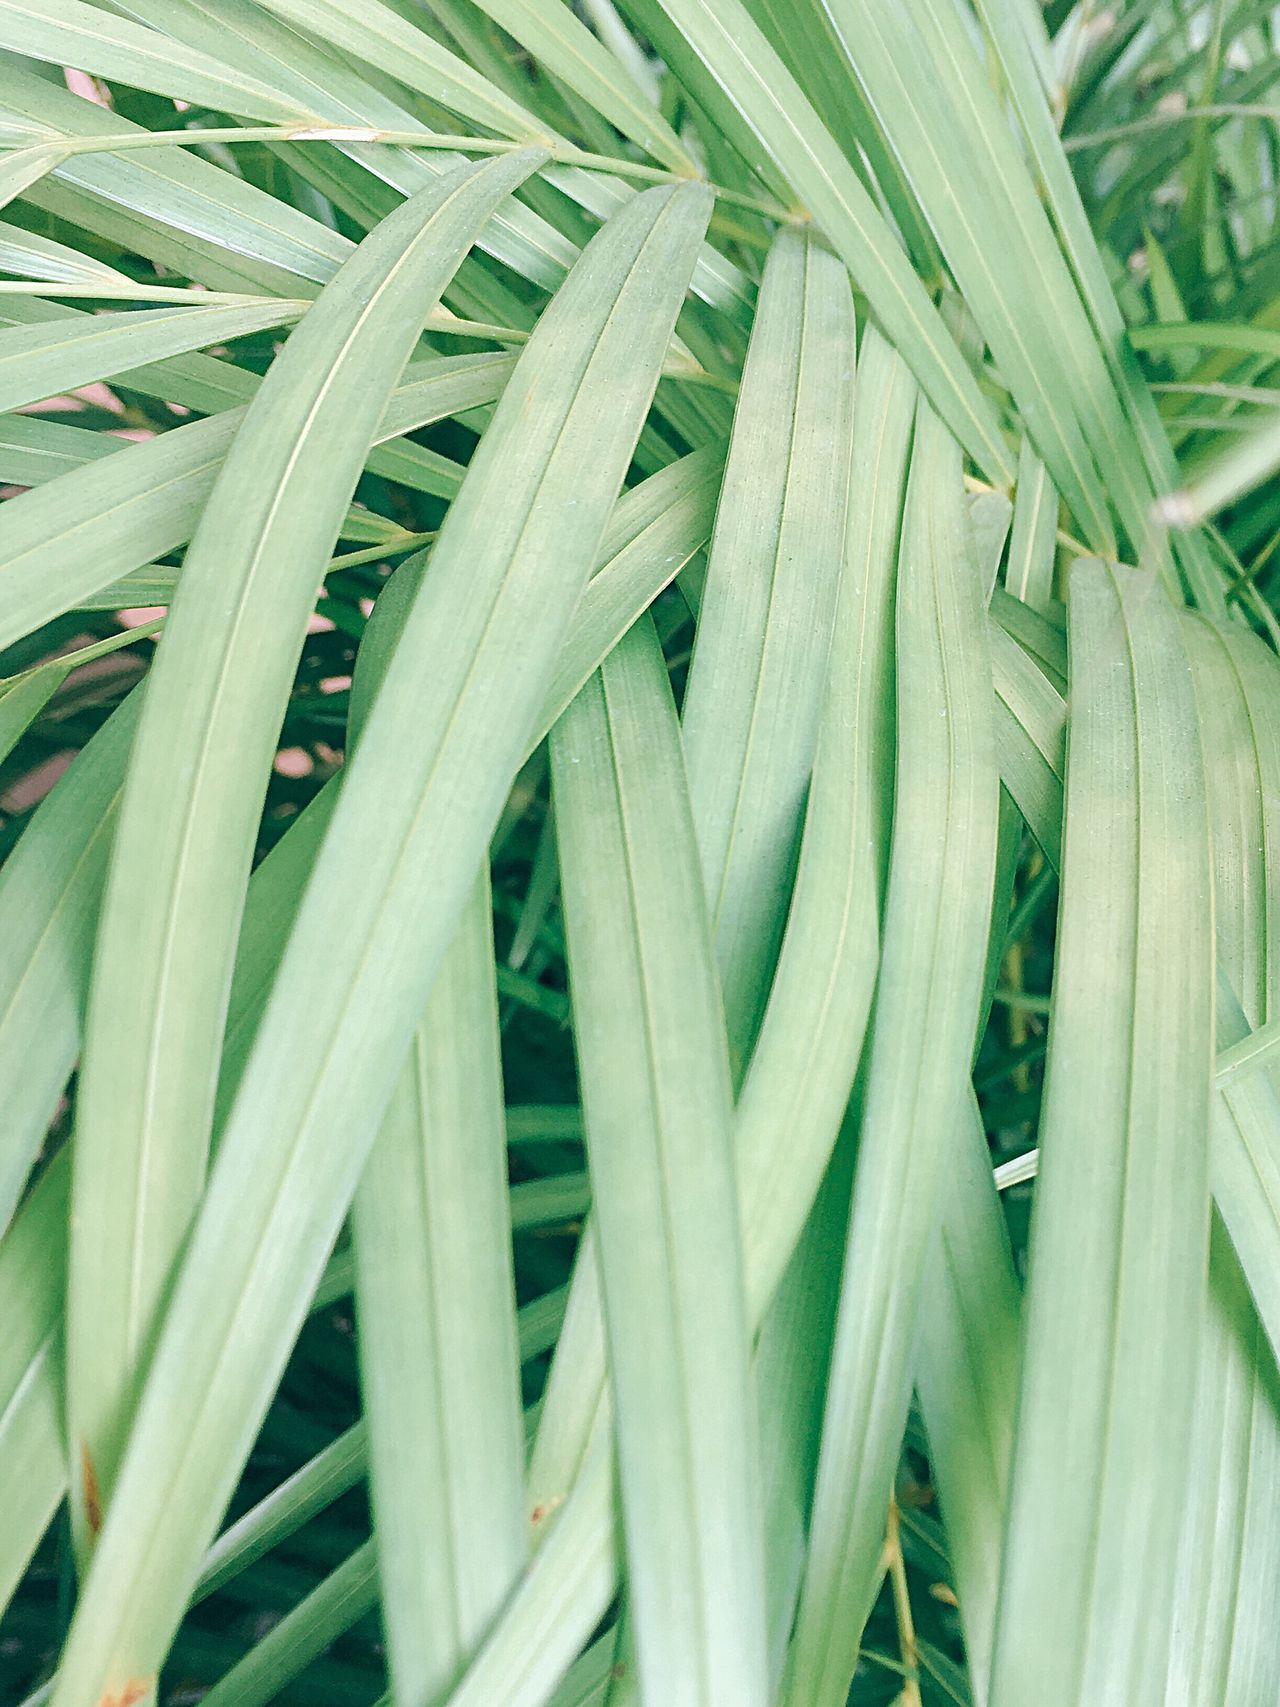 Plant Growth Backgrounds Green Color Close-up No People Full Frame Nature Outdoors Day Freshness Eyeem Philippines